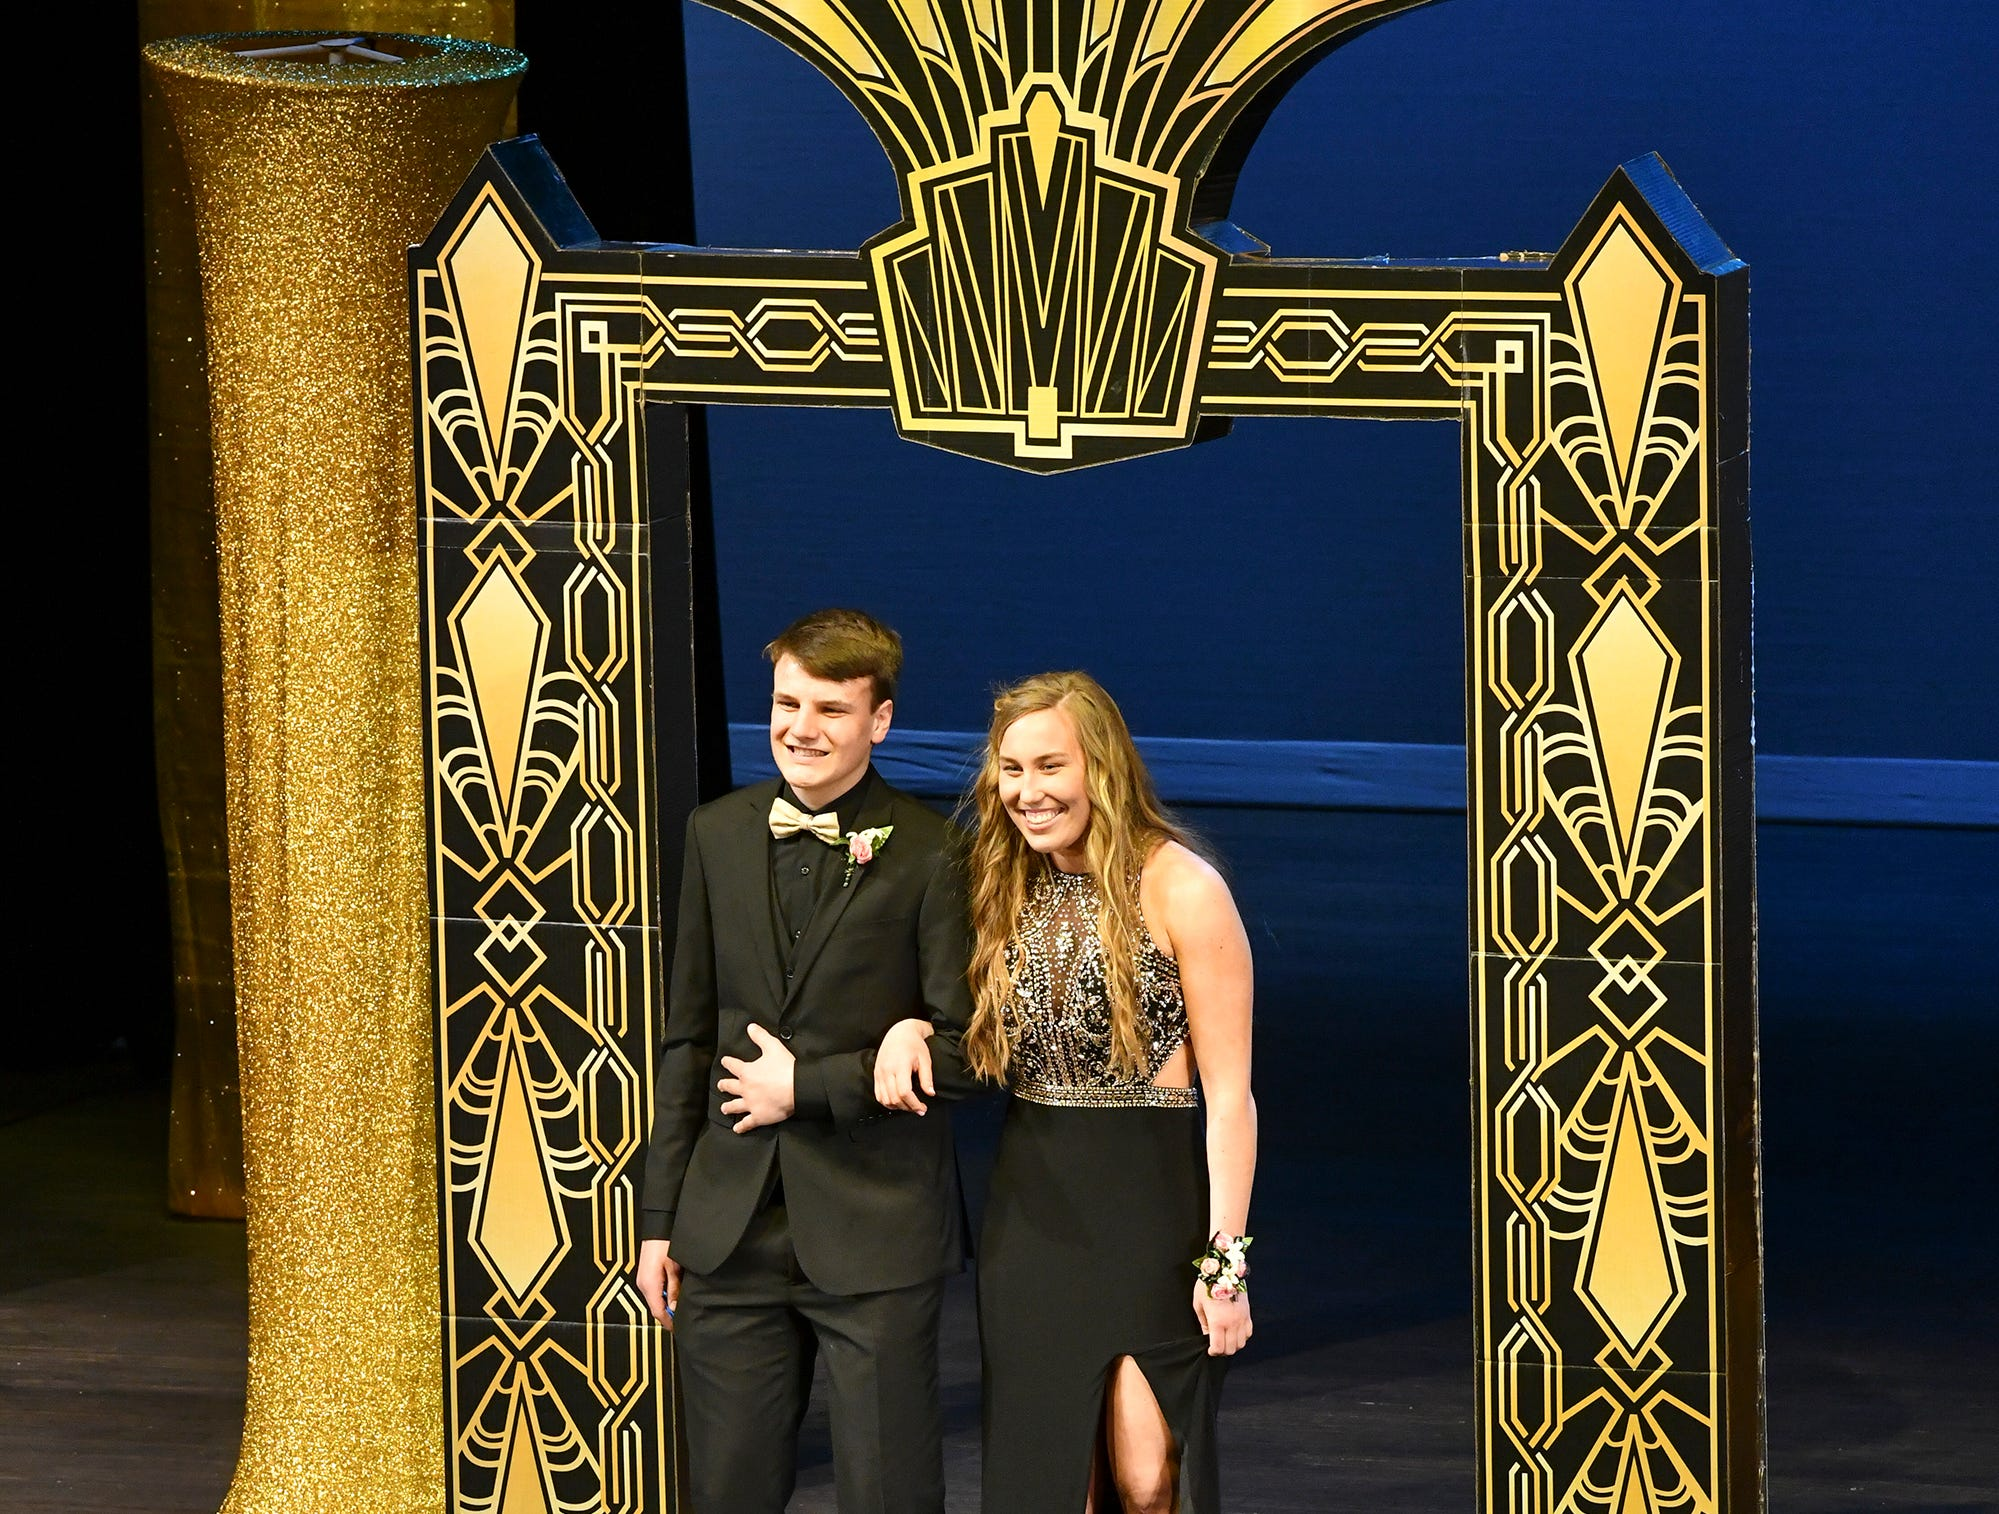 Abby Davey and Jacob Burg take their turn on stage during prom grand march Saturday, April 6, at Albany High School.